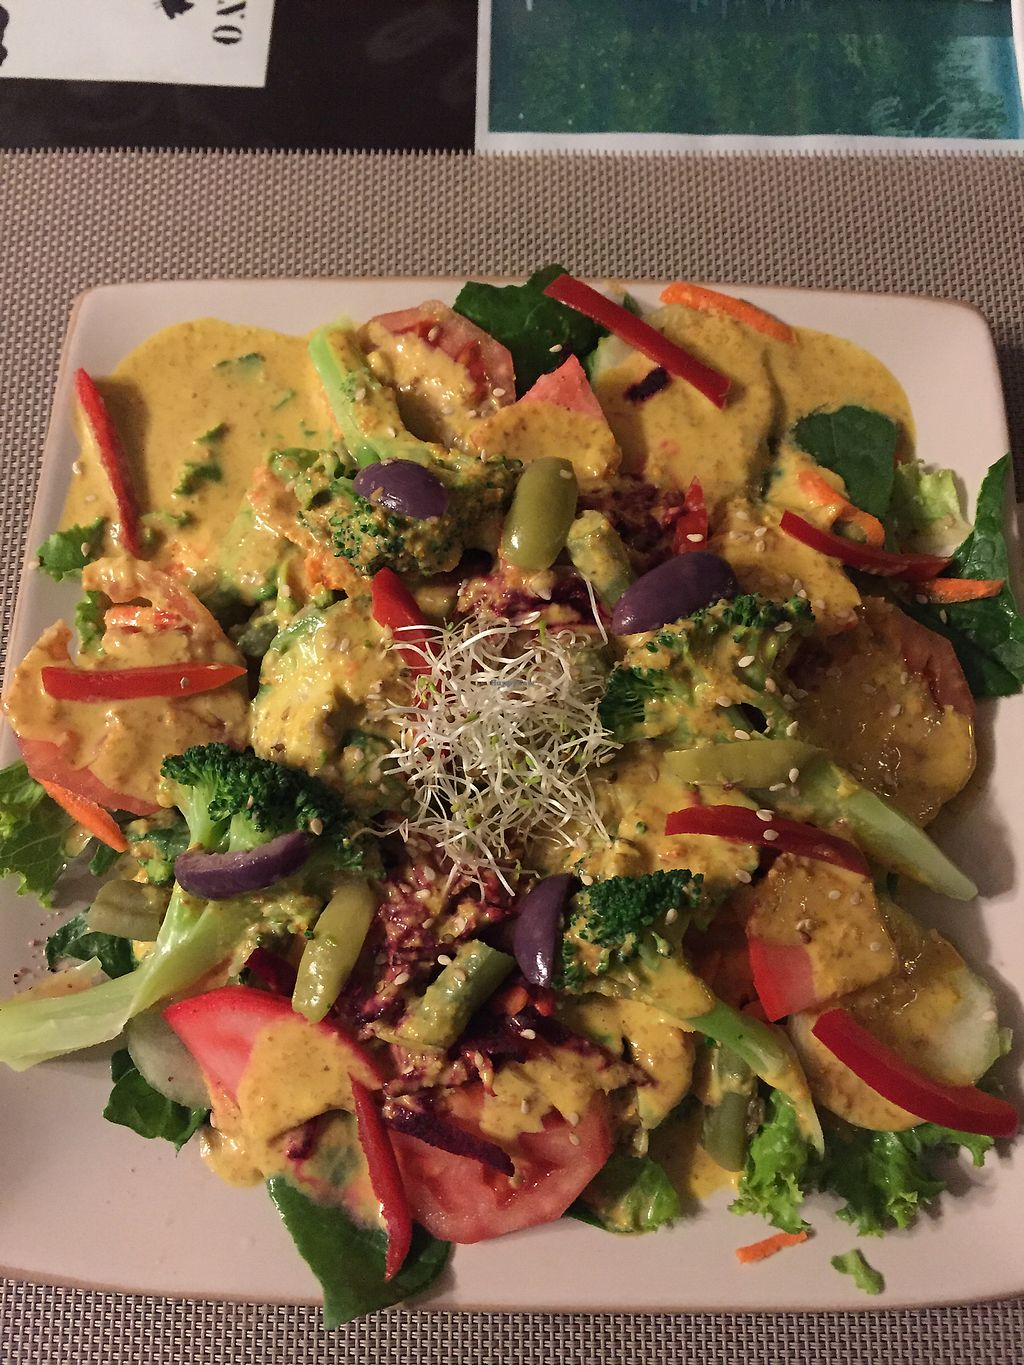 "Photo of Muya Musquy  by <a href=""/members/profile/Dianebg"">Dianebg</a> <br/>Salad with cashew dressing  <br/> November 10, 2017  - <a href='/contact/abuse/image/63908/324049'>Report</a>"